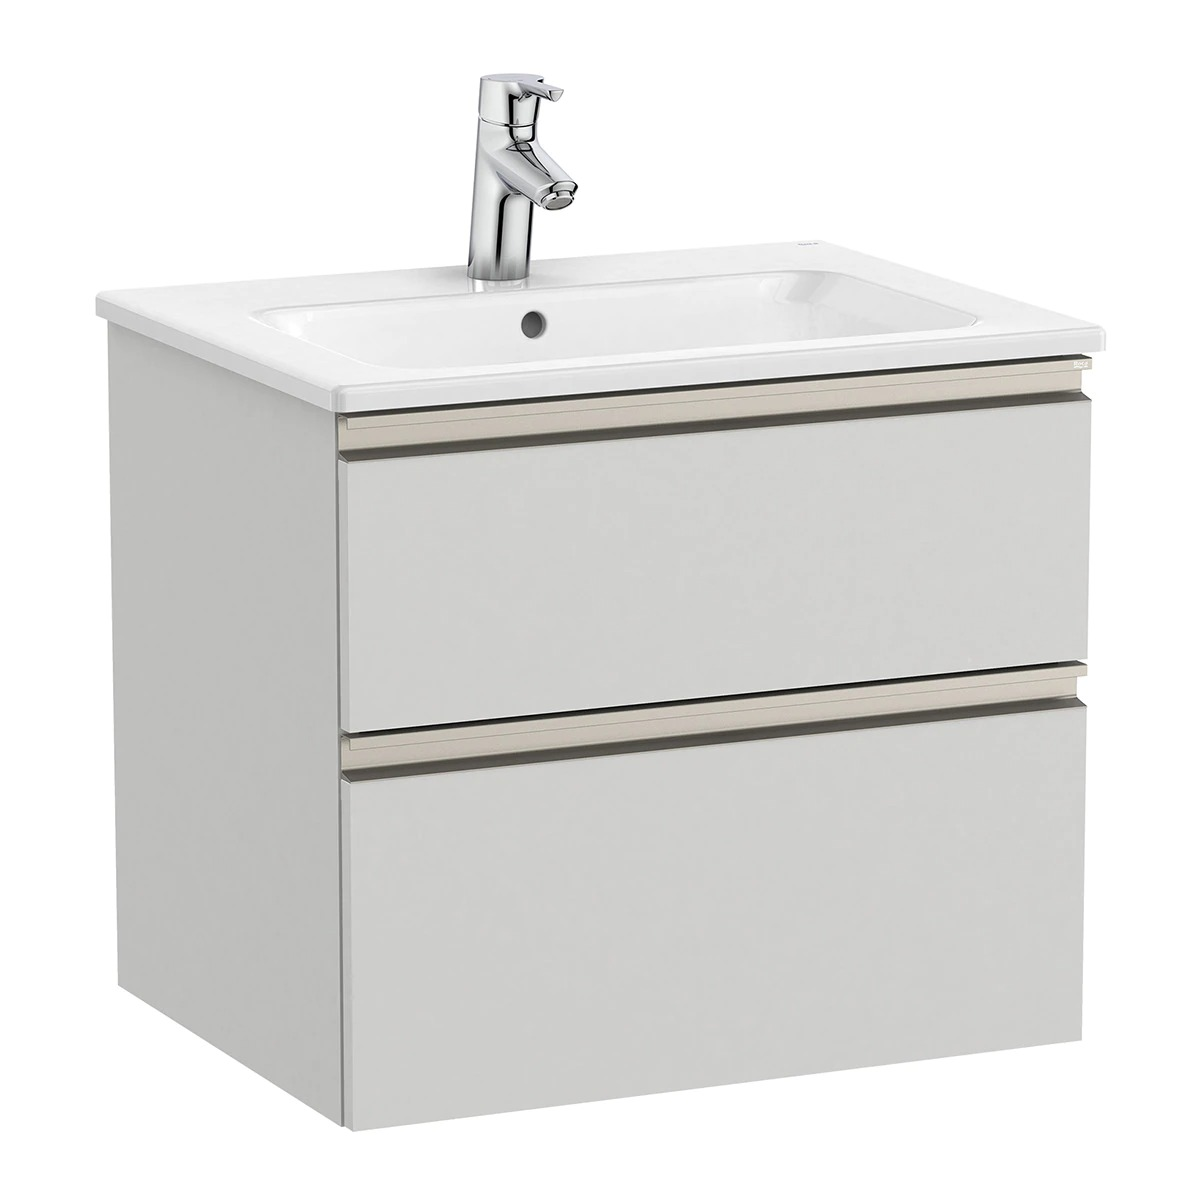 Bathroom cabinet with 2 drawers and basin The Gap Roca